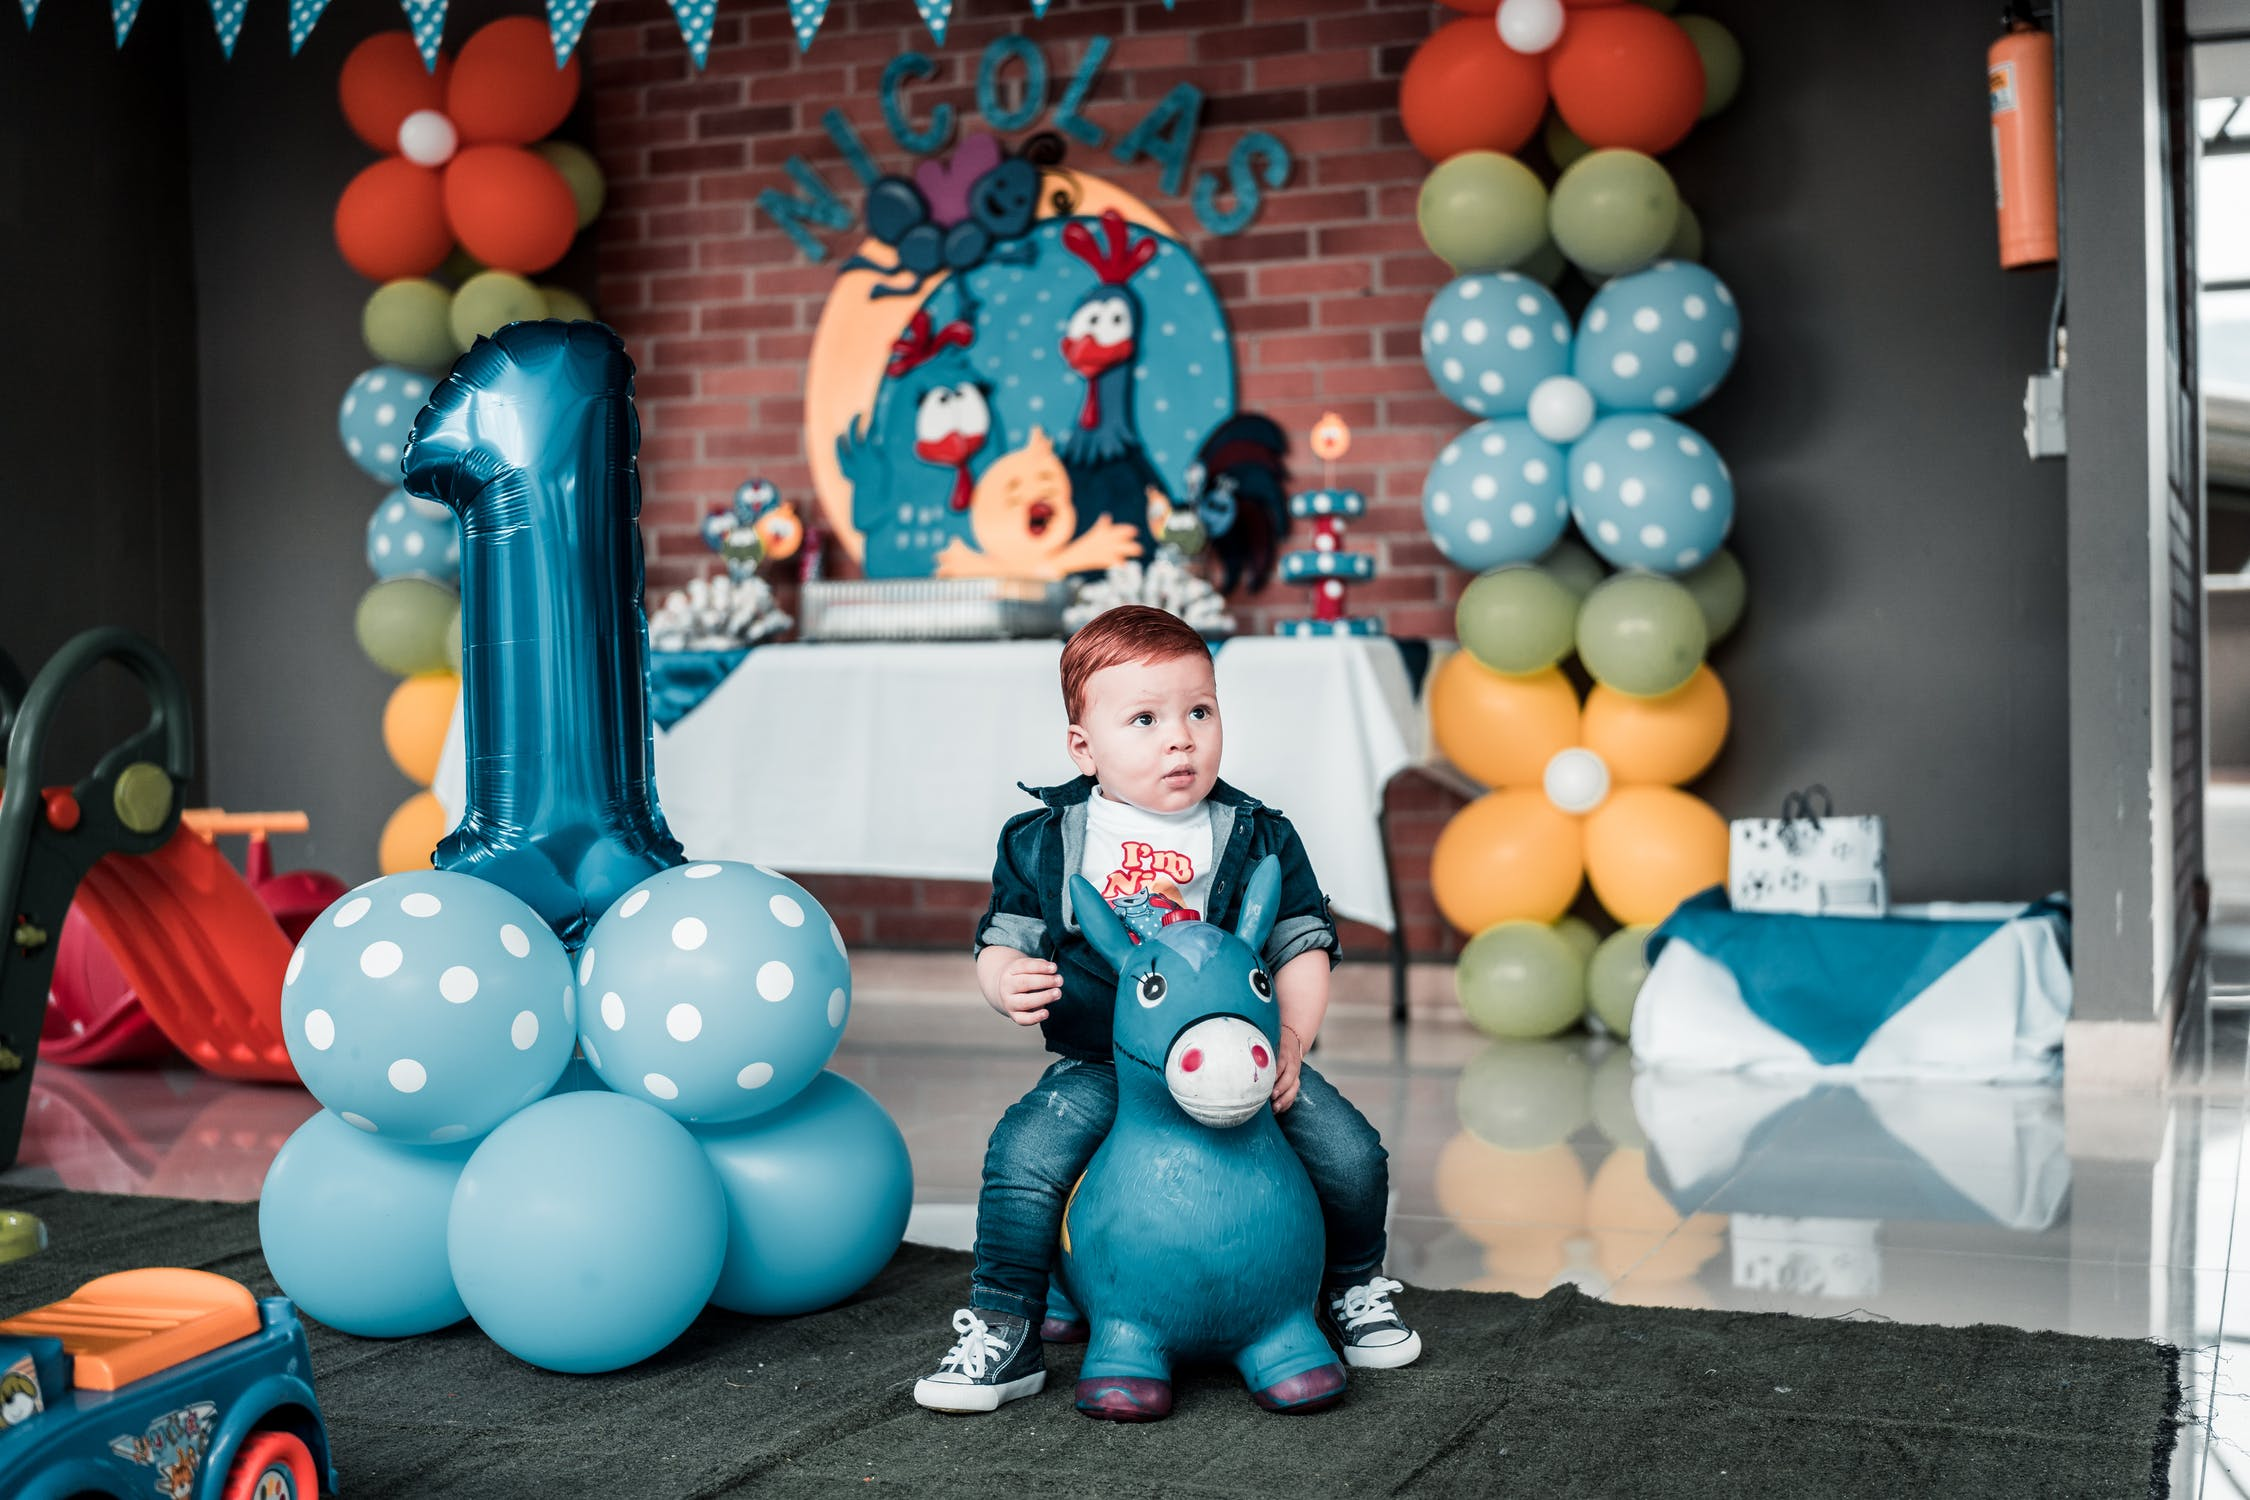 A young boy's birthday party | Photo: Pexels